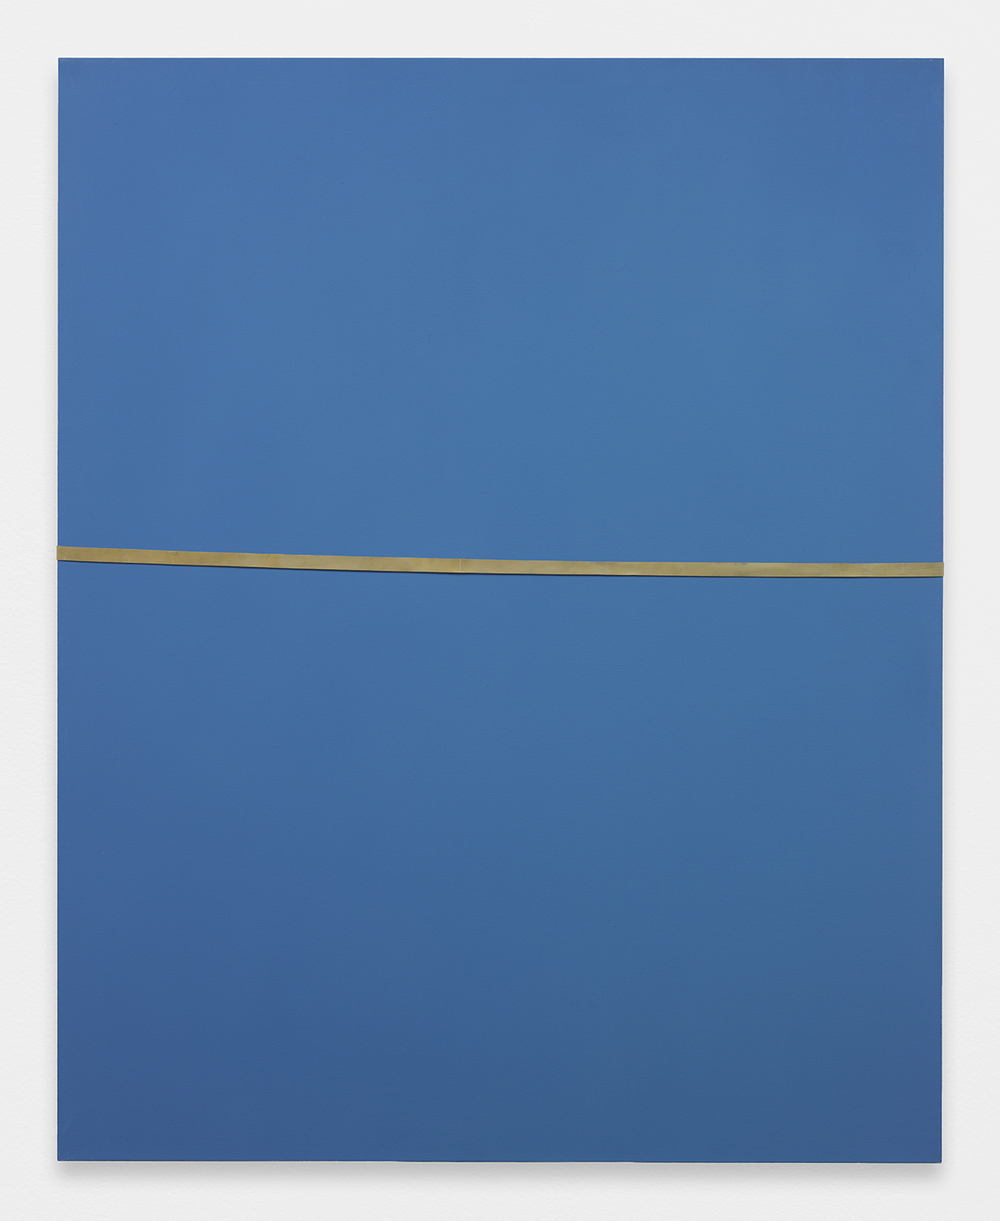 ALEX PERWEILER / ZACHARY SUSSKIND  Wet Tan Line  , 2013   Oil and industrial rubber band on canvas   60 x 48 inches